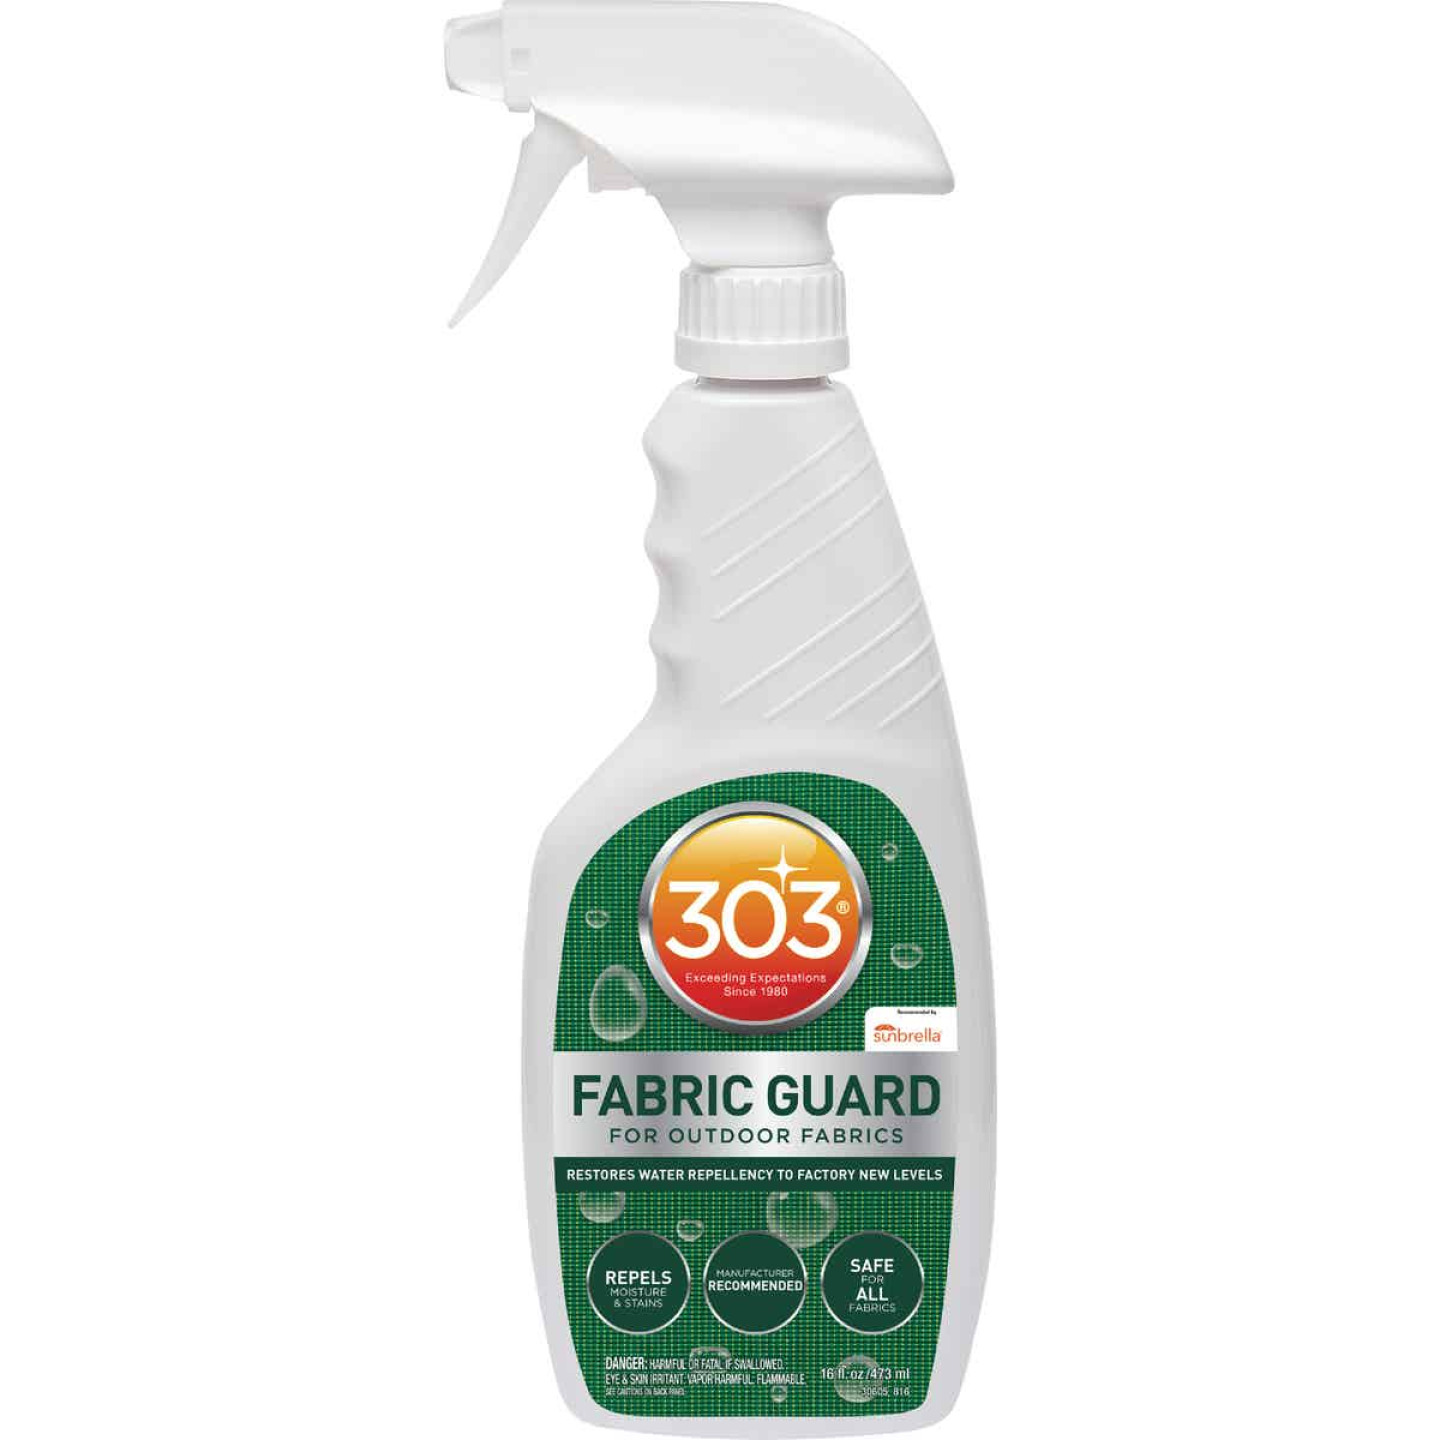 303 Products 16 Oz. Trigger Spray Outdoor Fabric Guard Image 1